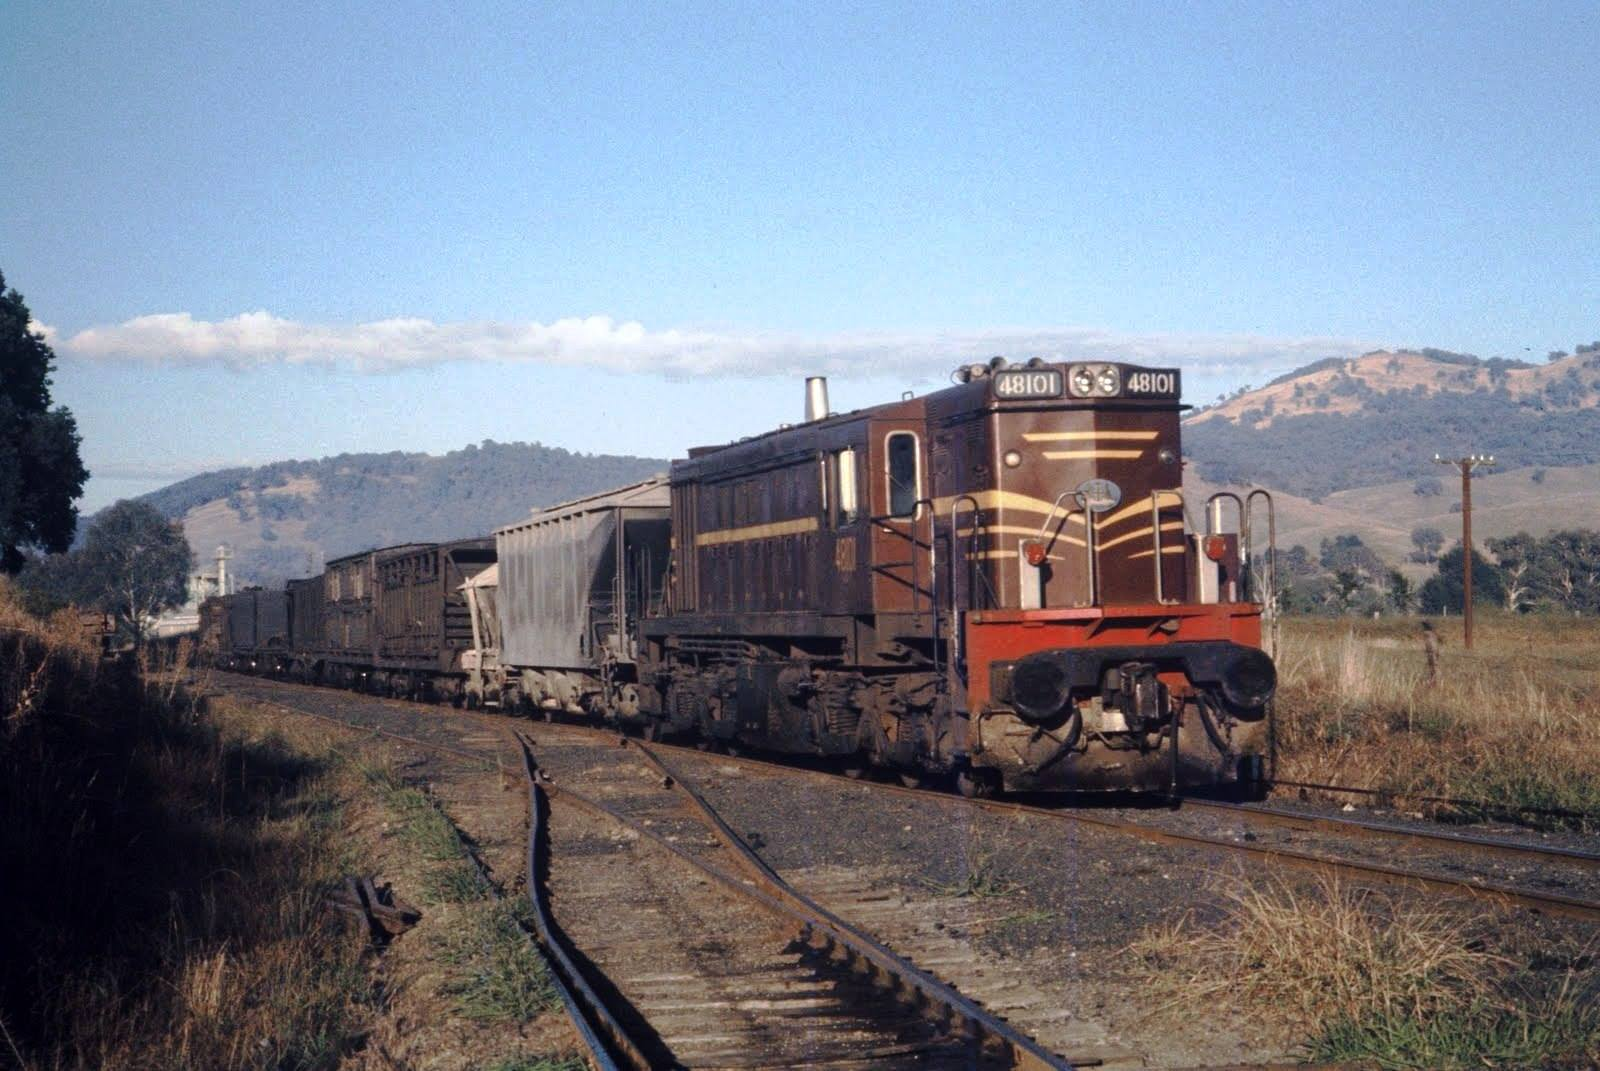 48 Class locomotive hauling freight